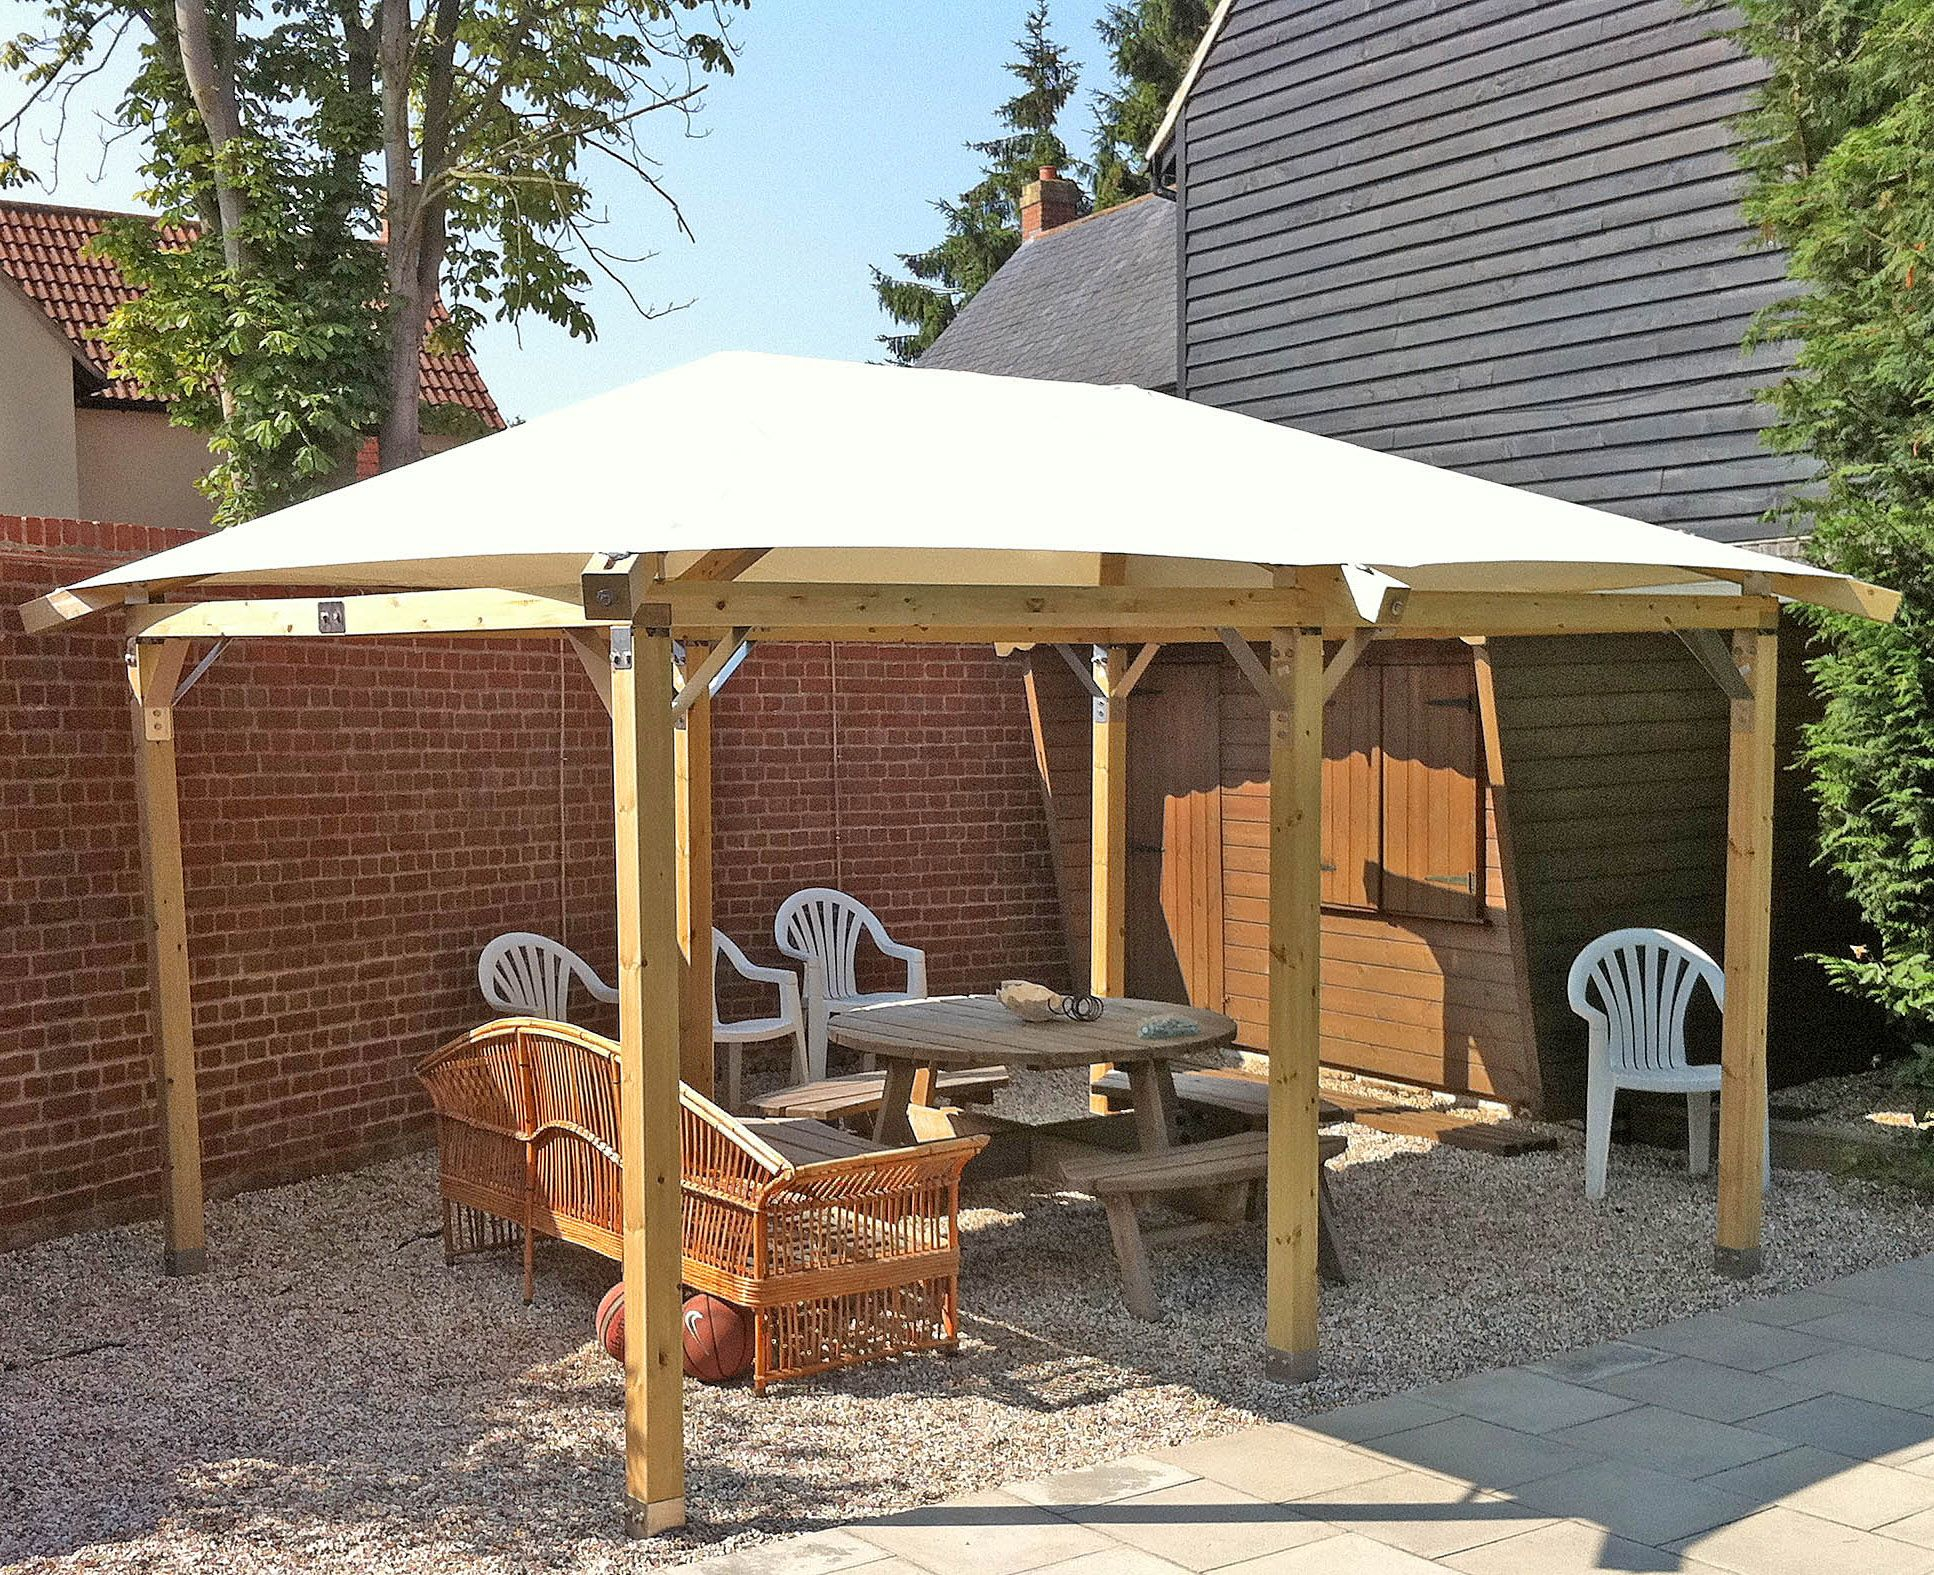 Best Pergola Canopy For Your Outdoor Ideas Amazing Rustic Outdoor Decoration Gazebo Design With Wooden Dark Retractable Pergola Canopy Pergola Canopy ... : garden gazebos and canopies - memphite.com